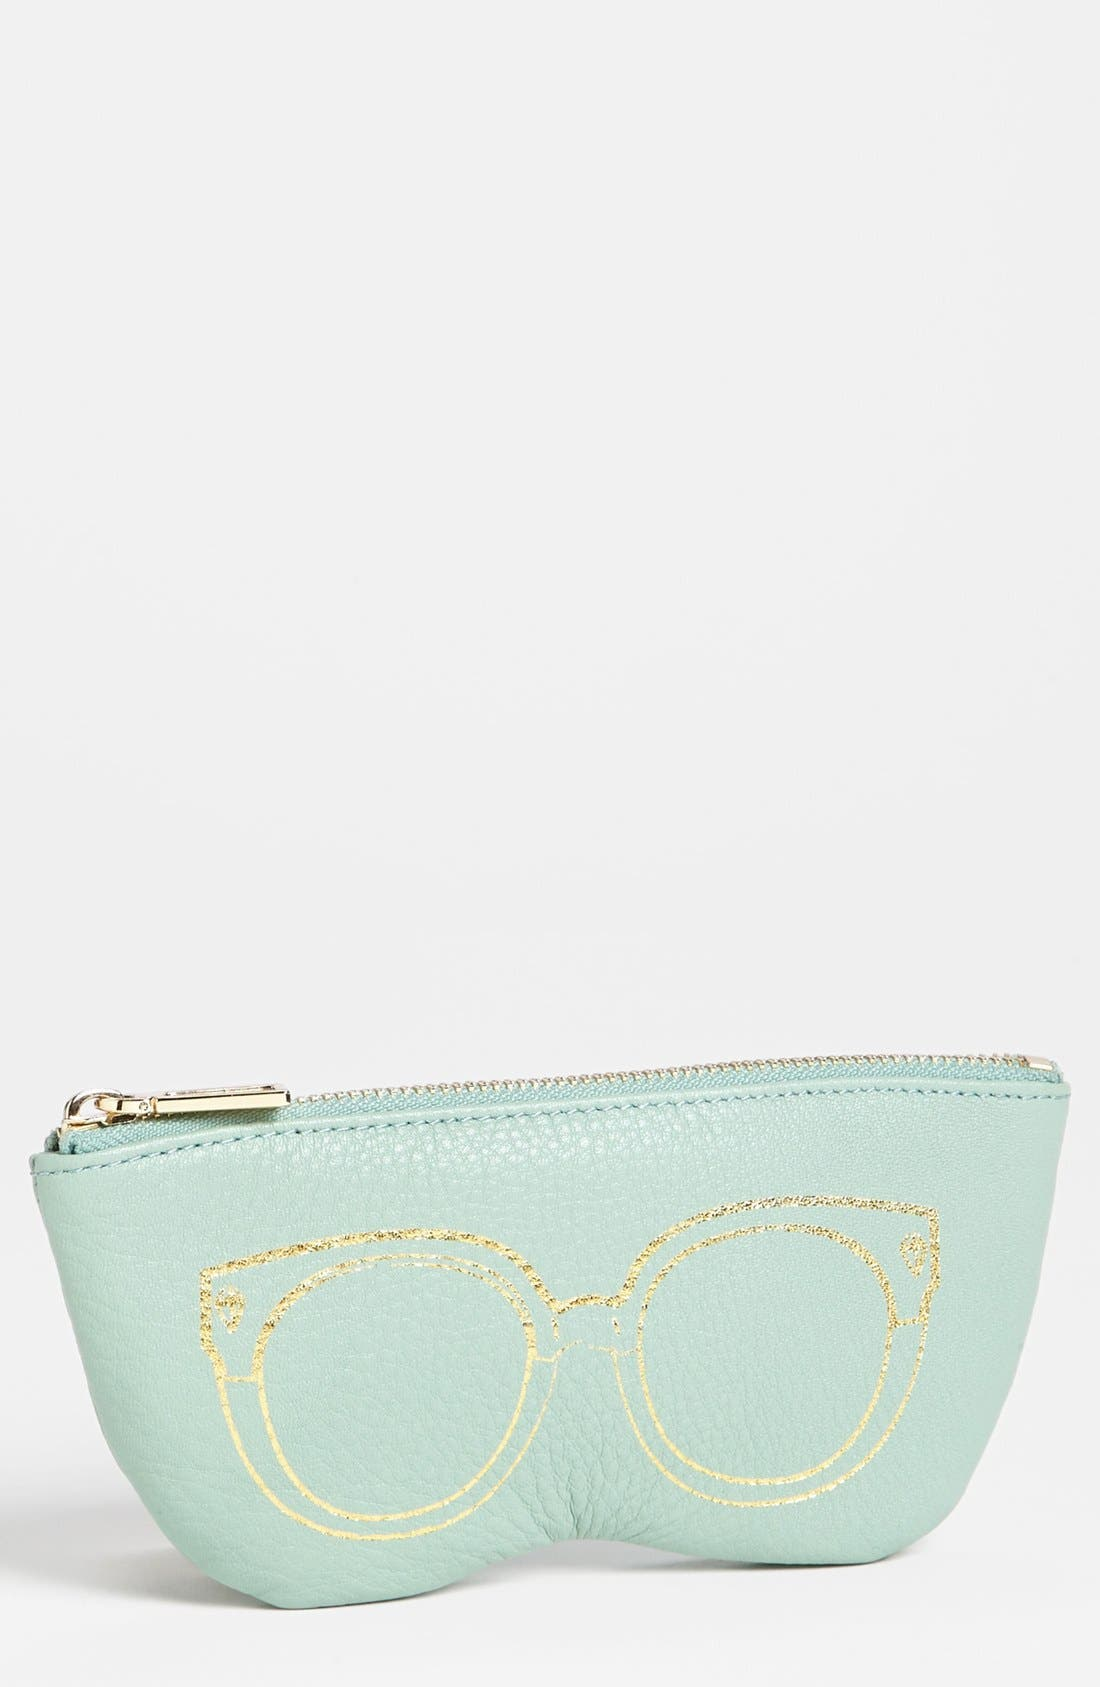 Alternate Image 1 Selected - Rebecca Minkoff Leather Sunglasses Case